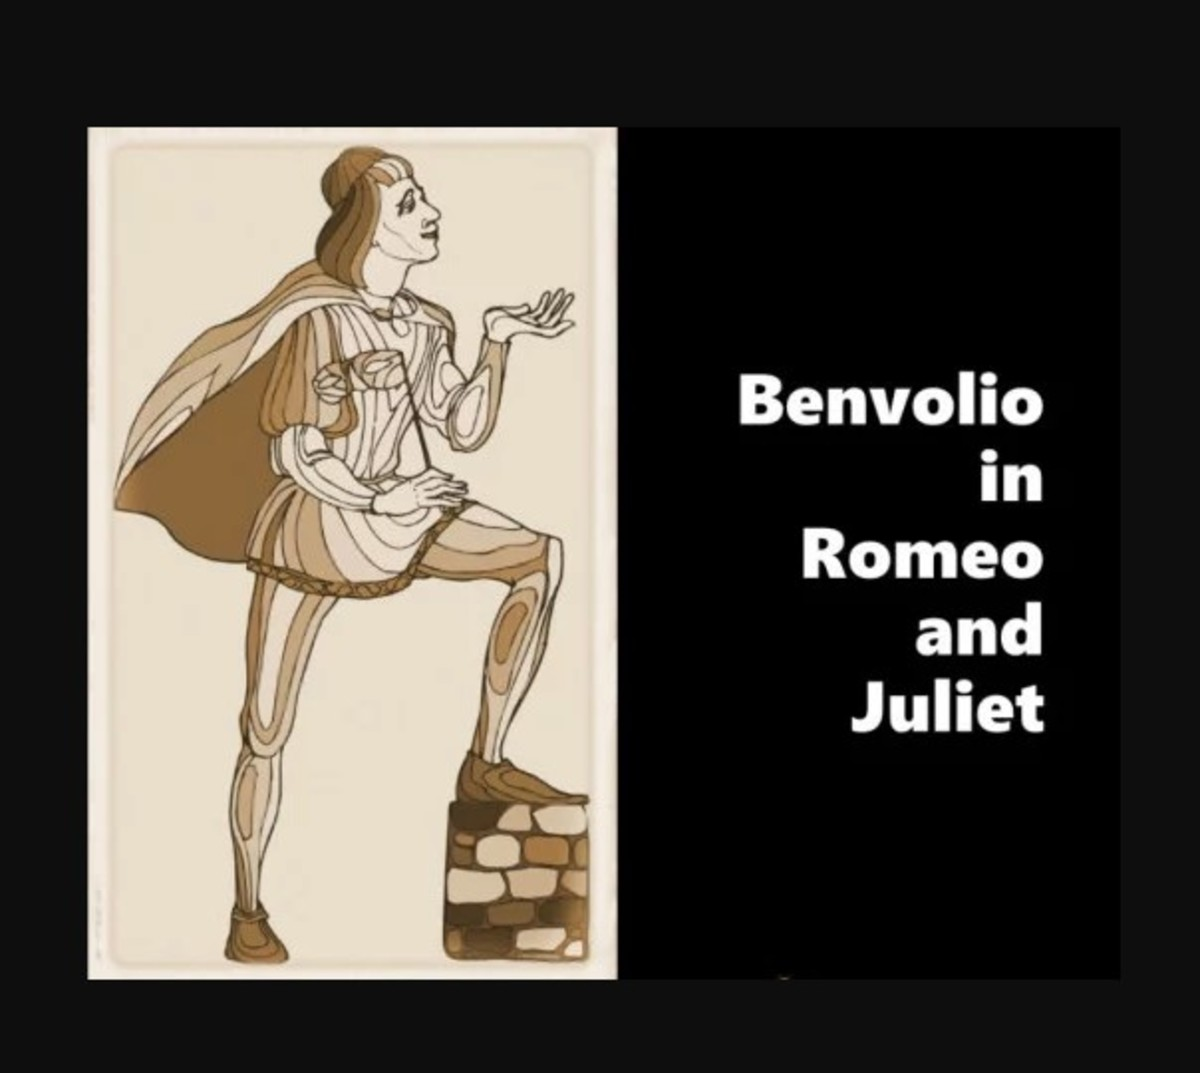 Benvolio in Romeo and Juliet: Character Analysis and Description